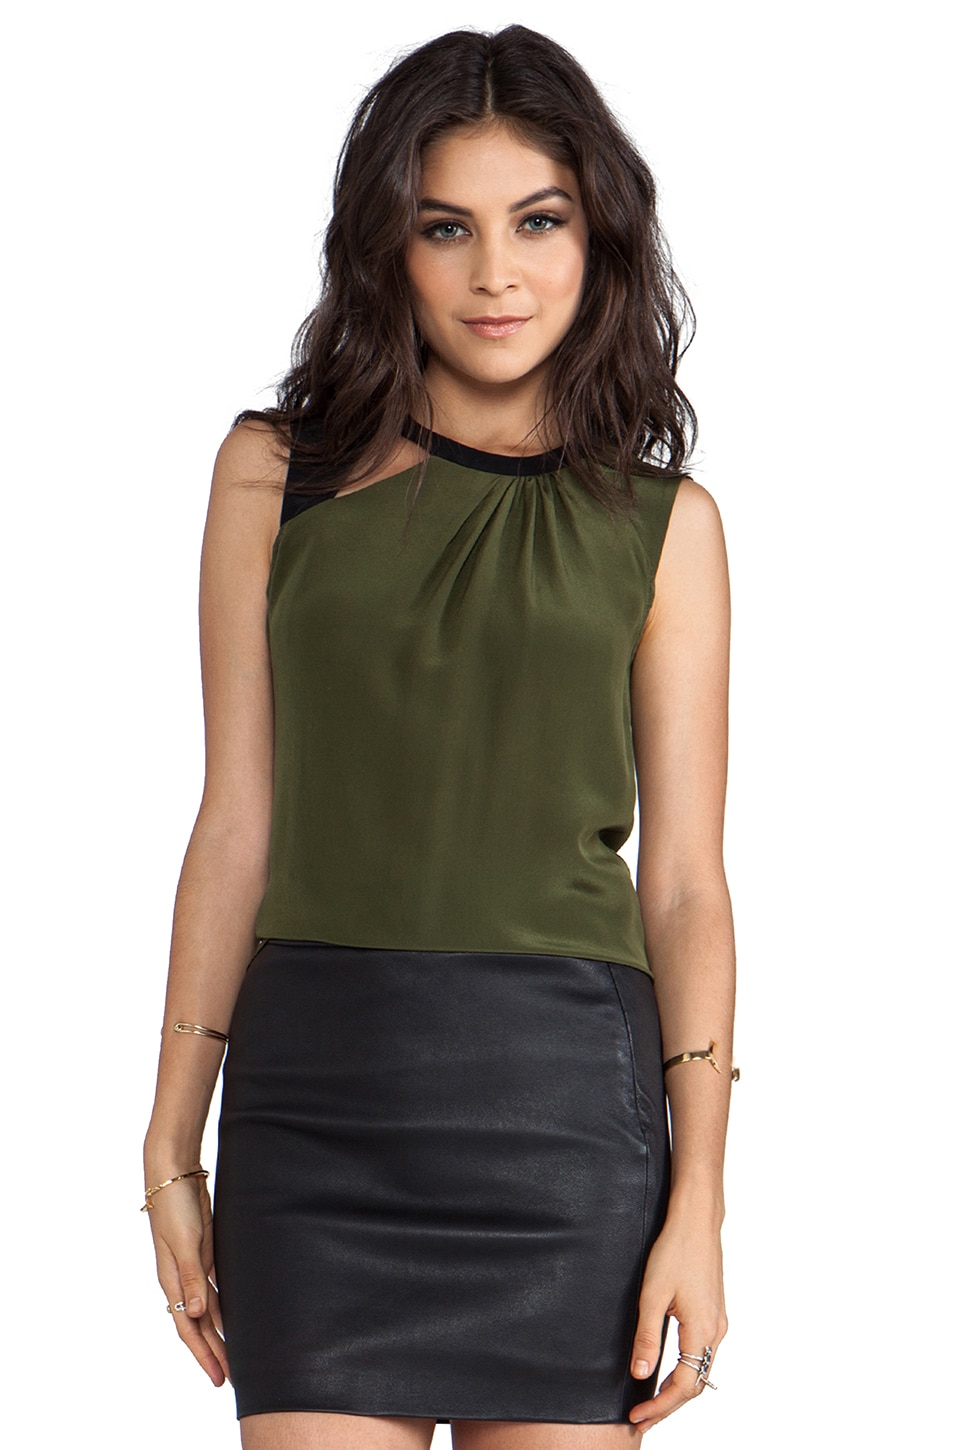 Nanette Lepore Neptune Silk Mercury Top in Olive